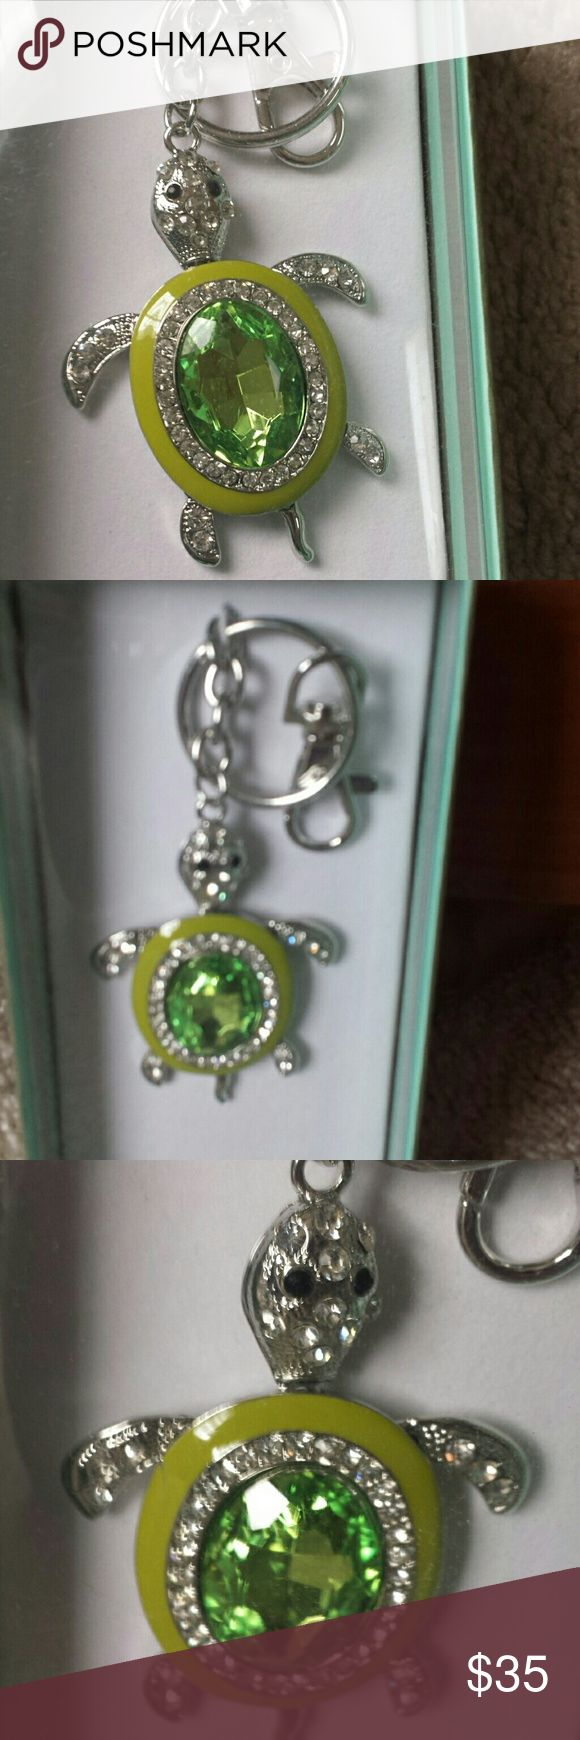 Green diamond turtle key chain Neman Marcus NWT Diamond green turtle key chain brand new in box from Neman Marcus. Gorgeous green colors. Super cute turtle and his tail moves back and forth.  Strong and sturdy great gift for yourself or special someone.  Originally $100. Neman marcus Jewelry